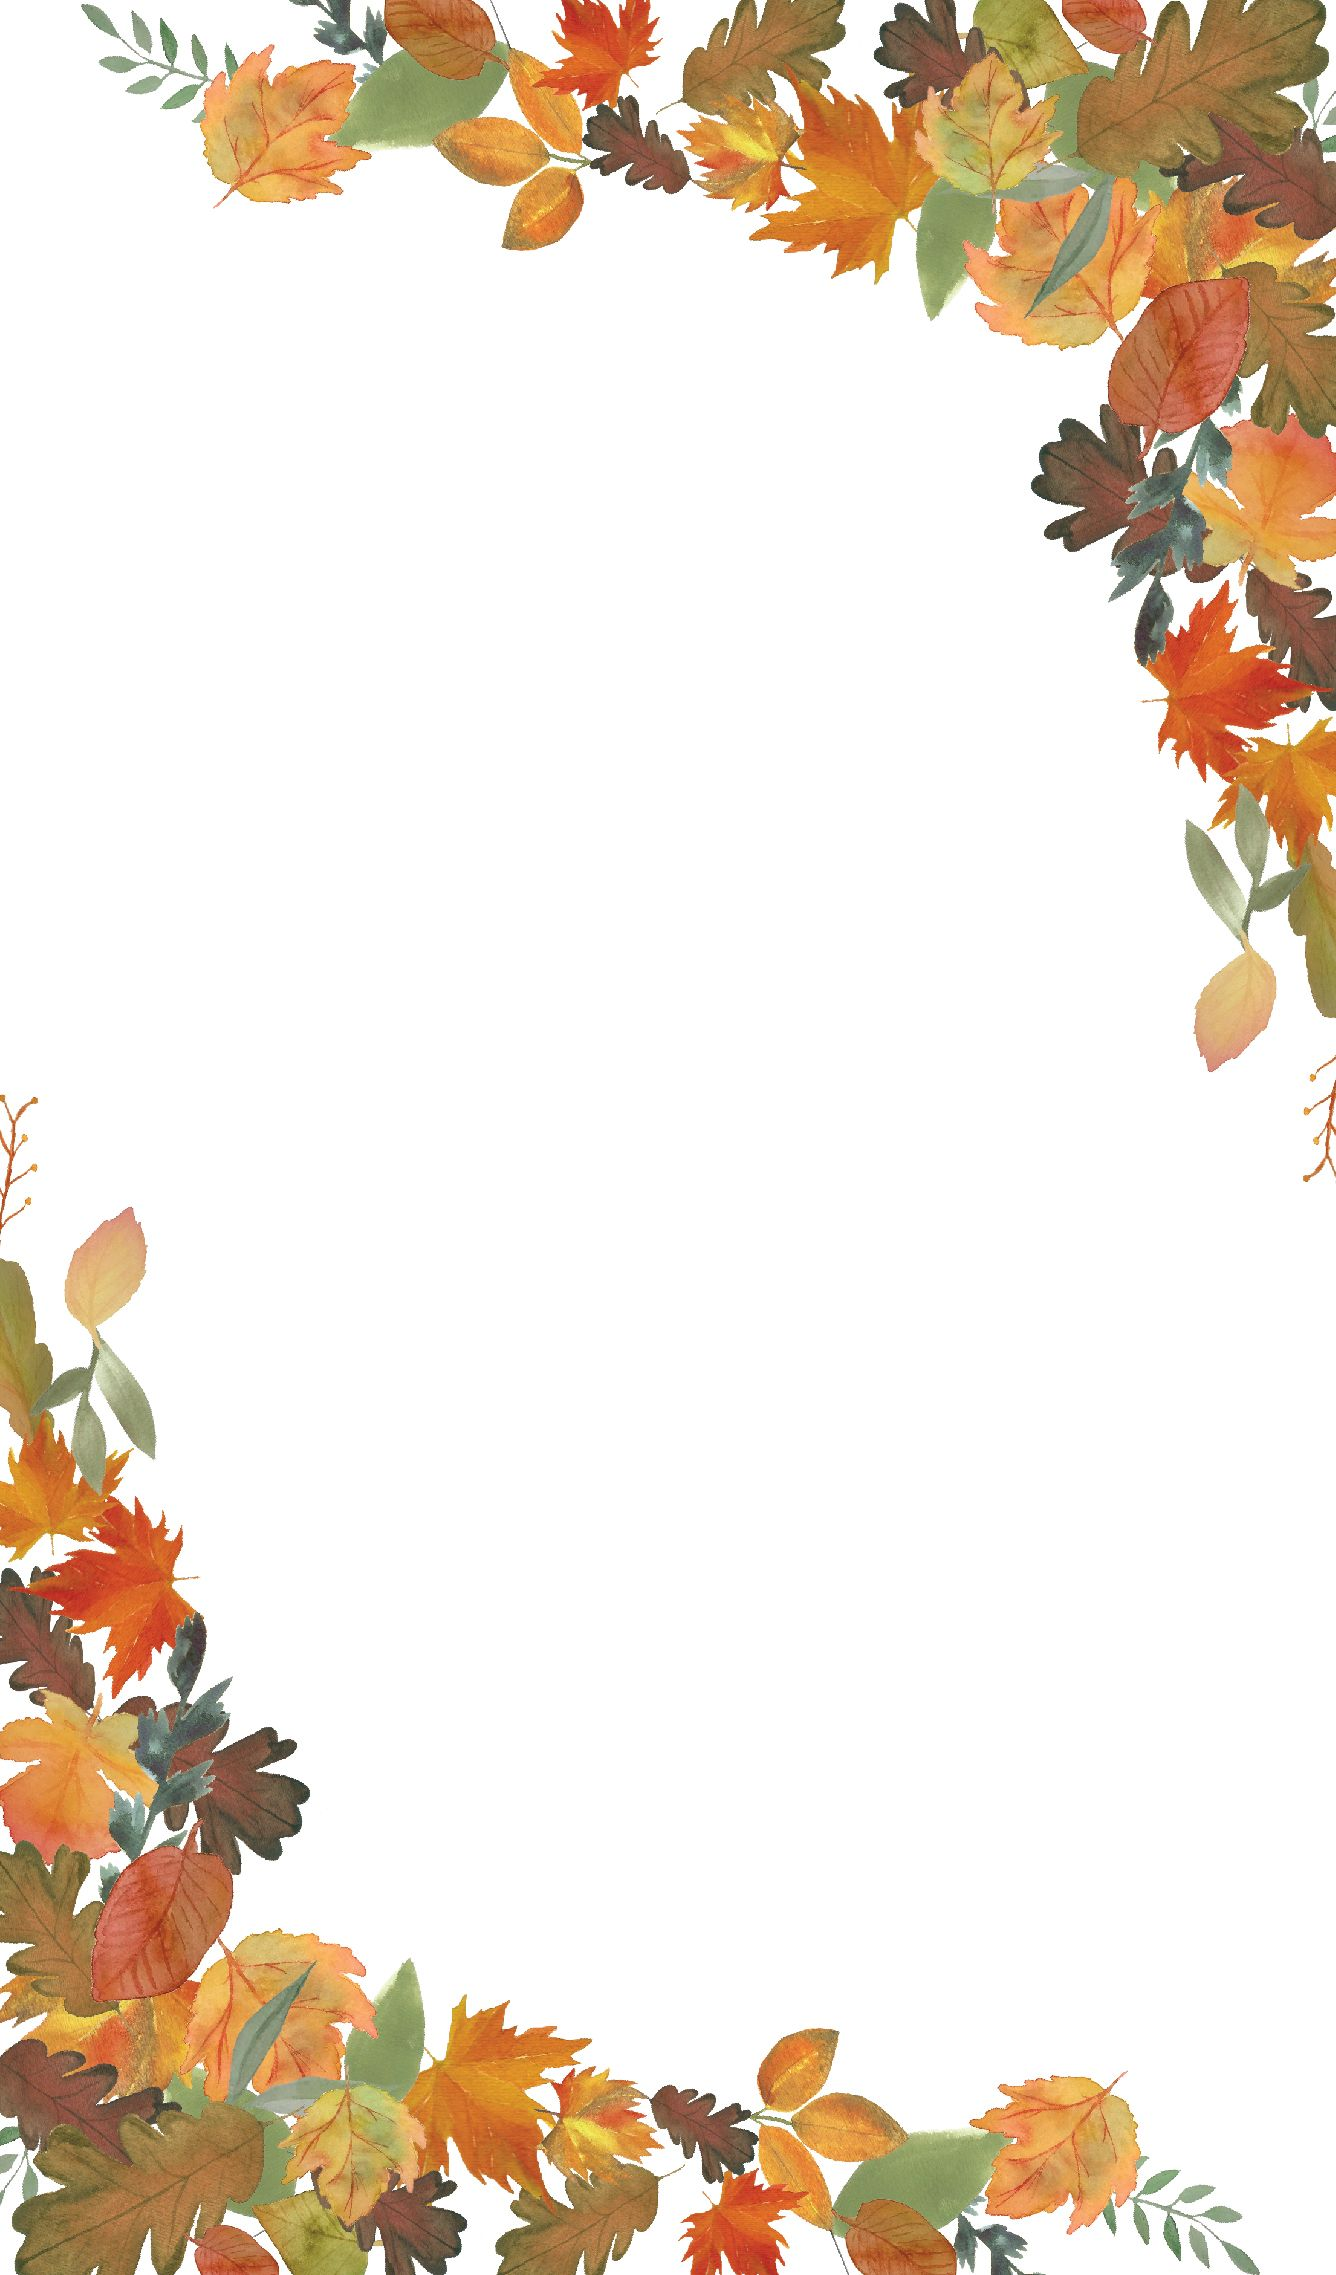 Fall Leaves Wallpaper for iPhone